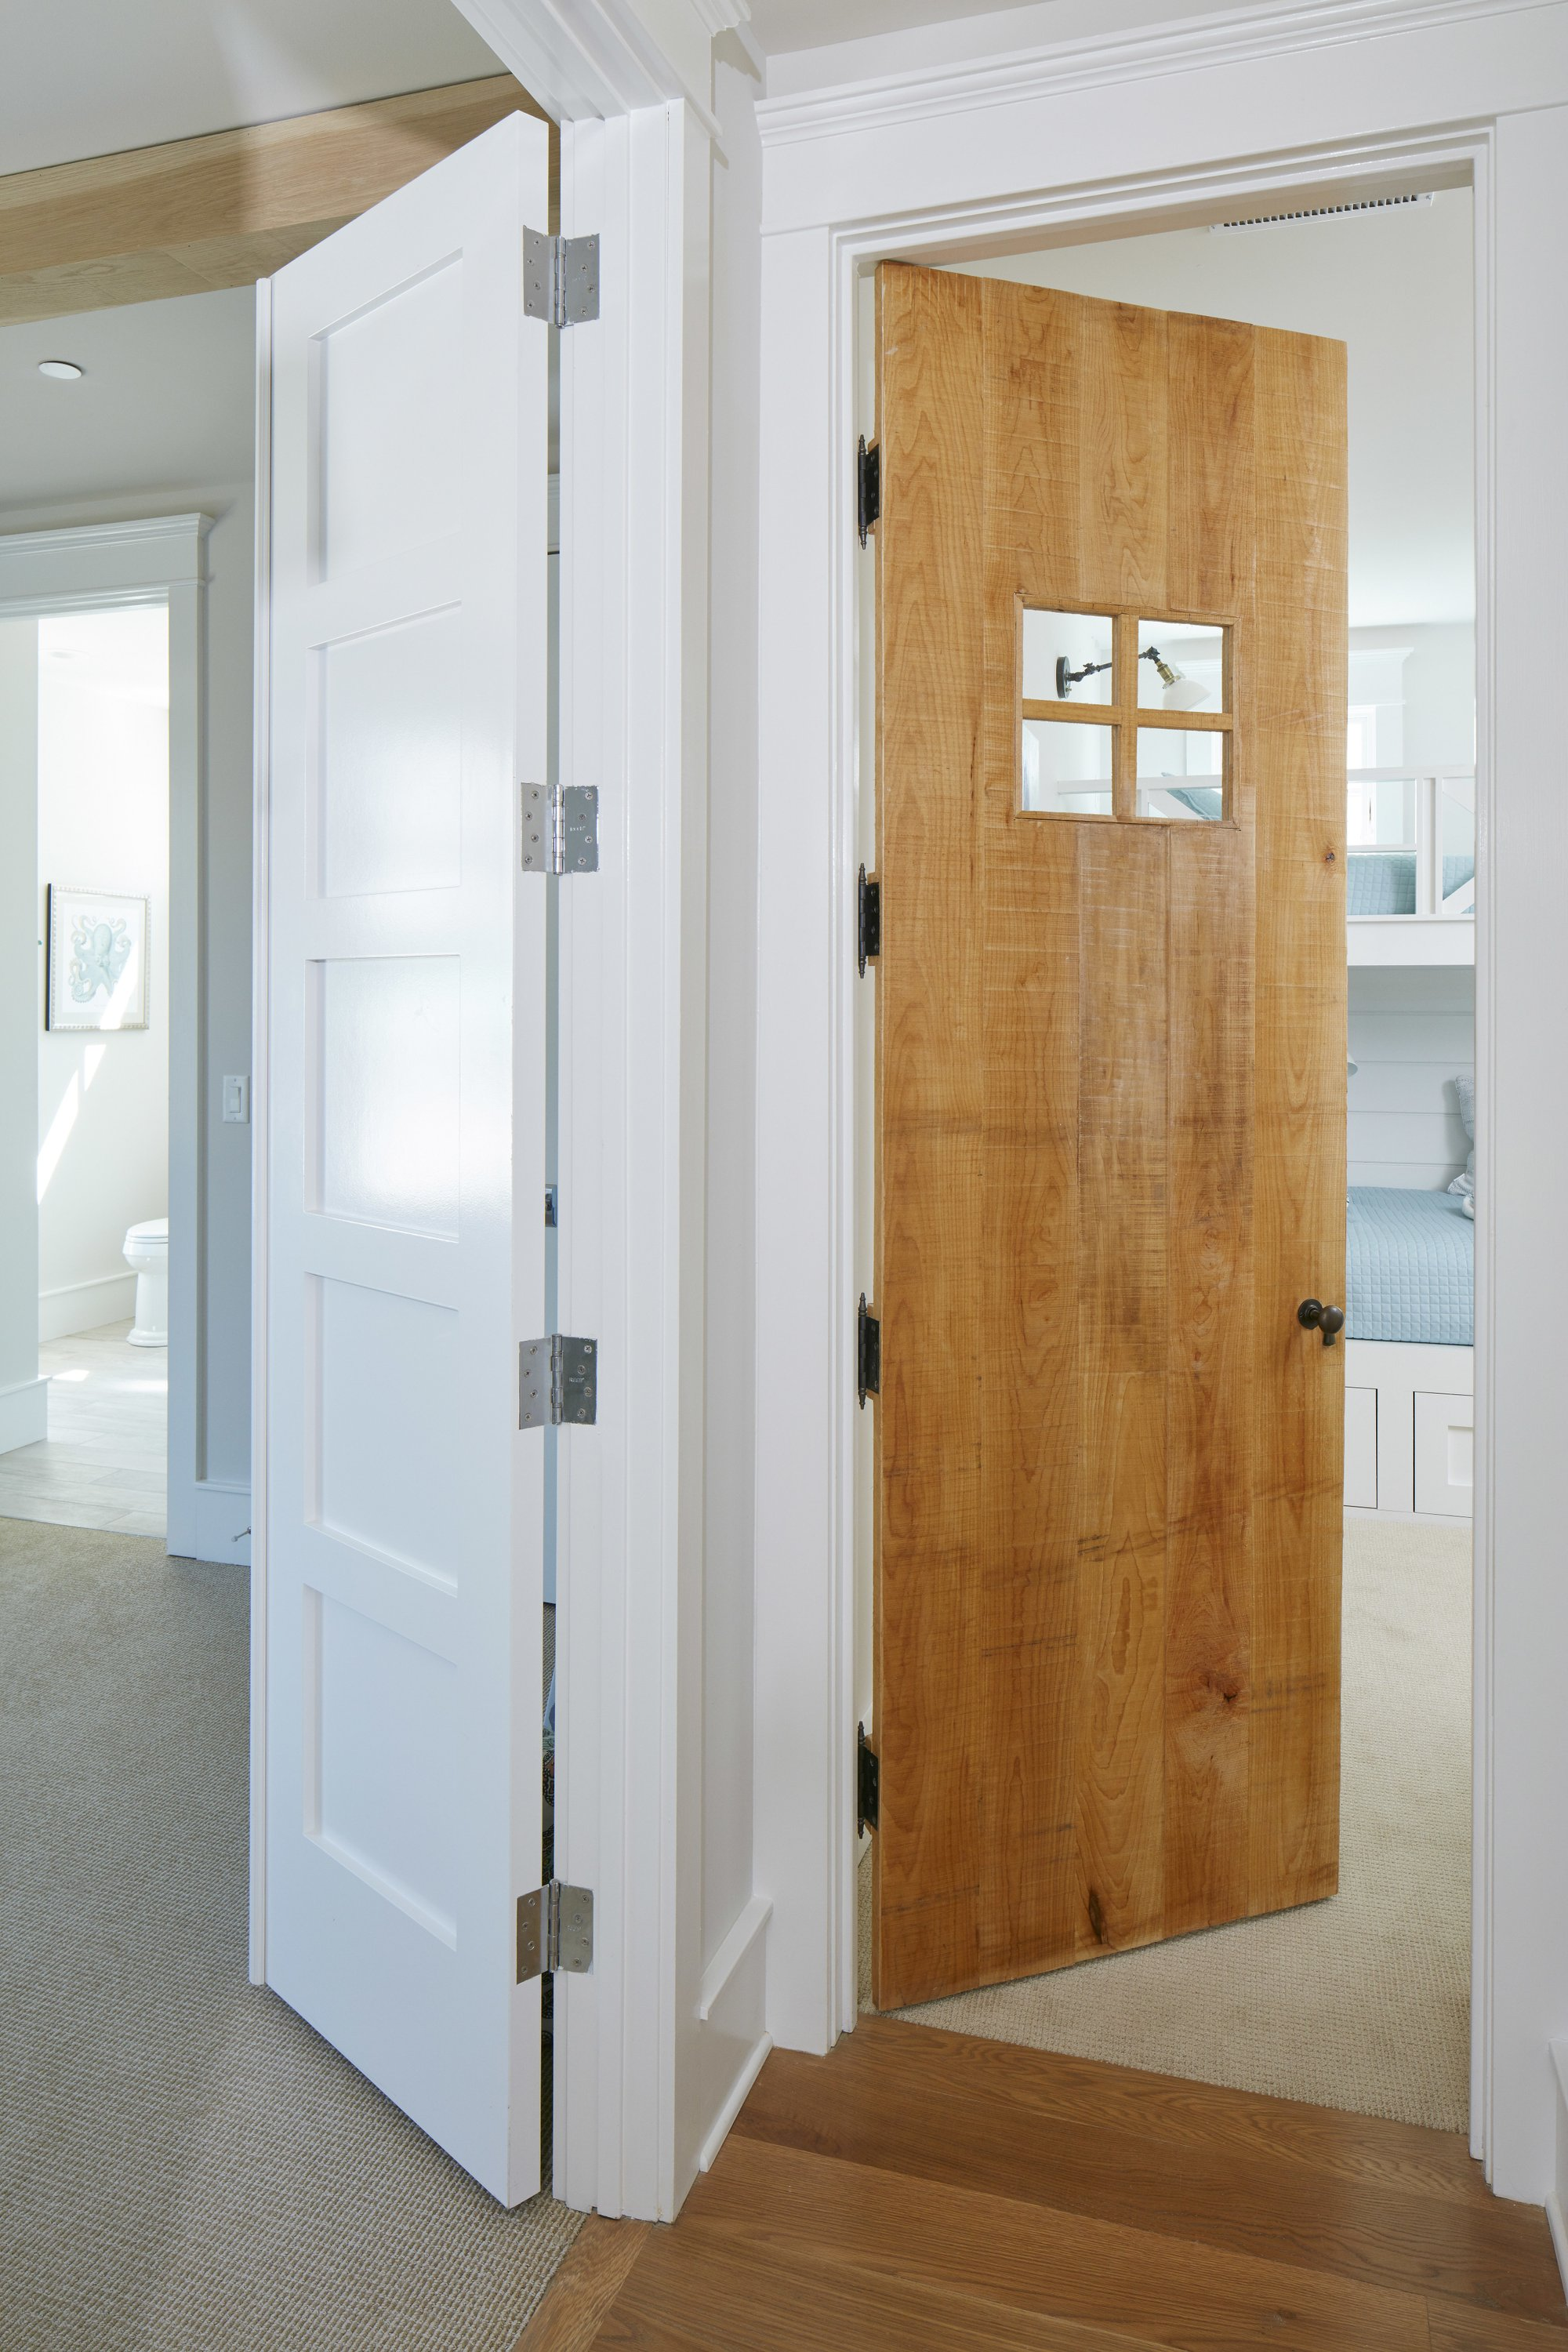 ASK A DESIGNER: Interior Doors Can Add Light, Personality